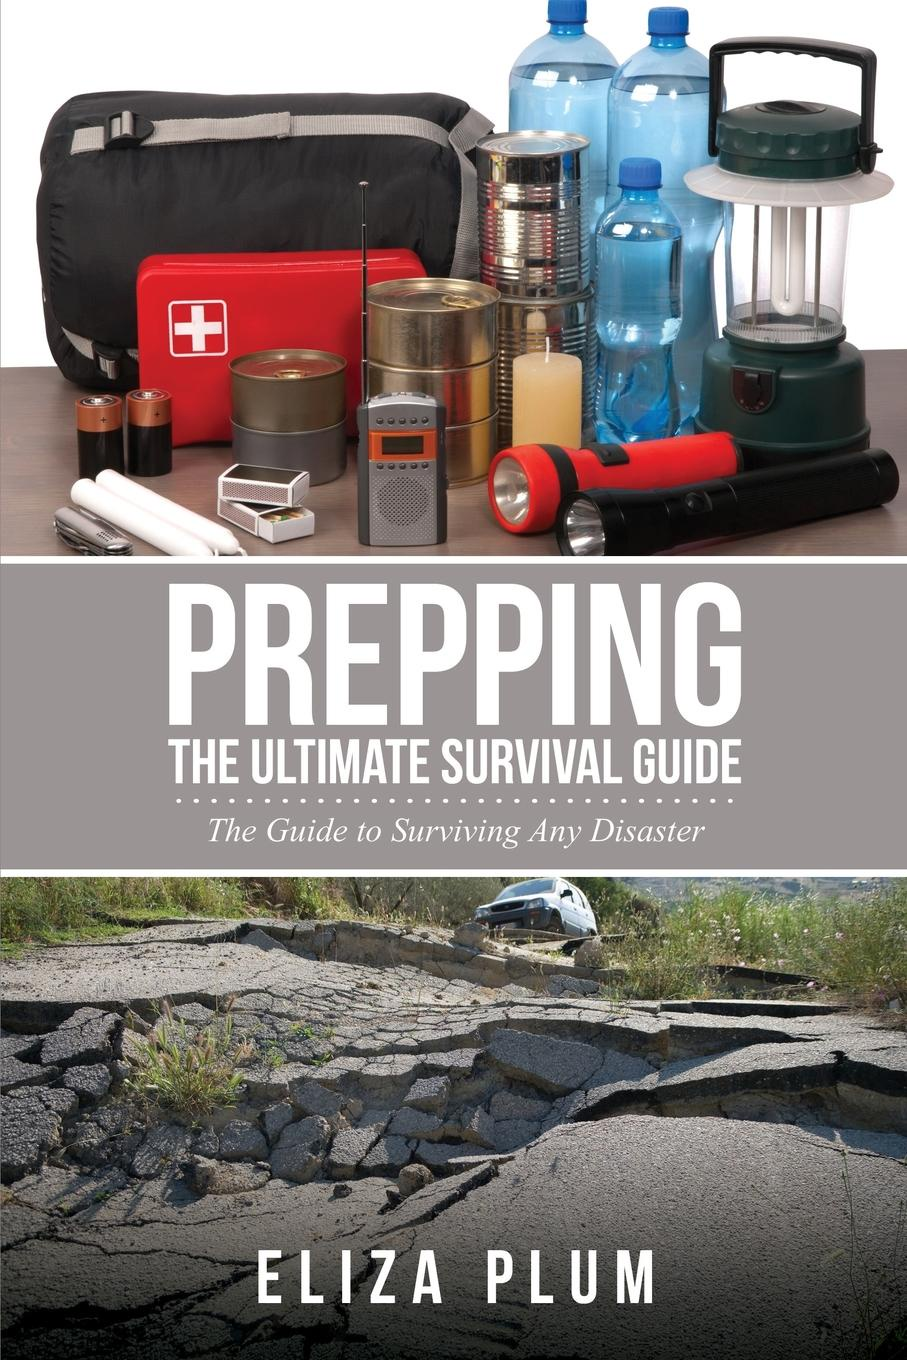 Eliza Plum Prepping. The Ultimate Survival Guide: The Guide to Surviving Any Disaster